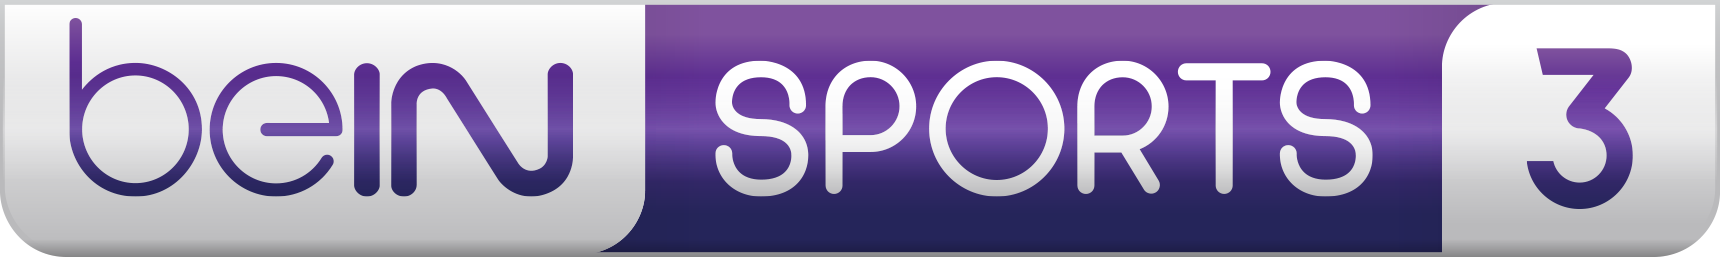 Image result for bein Sport 3 png